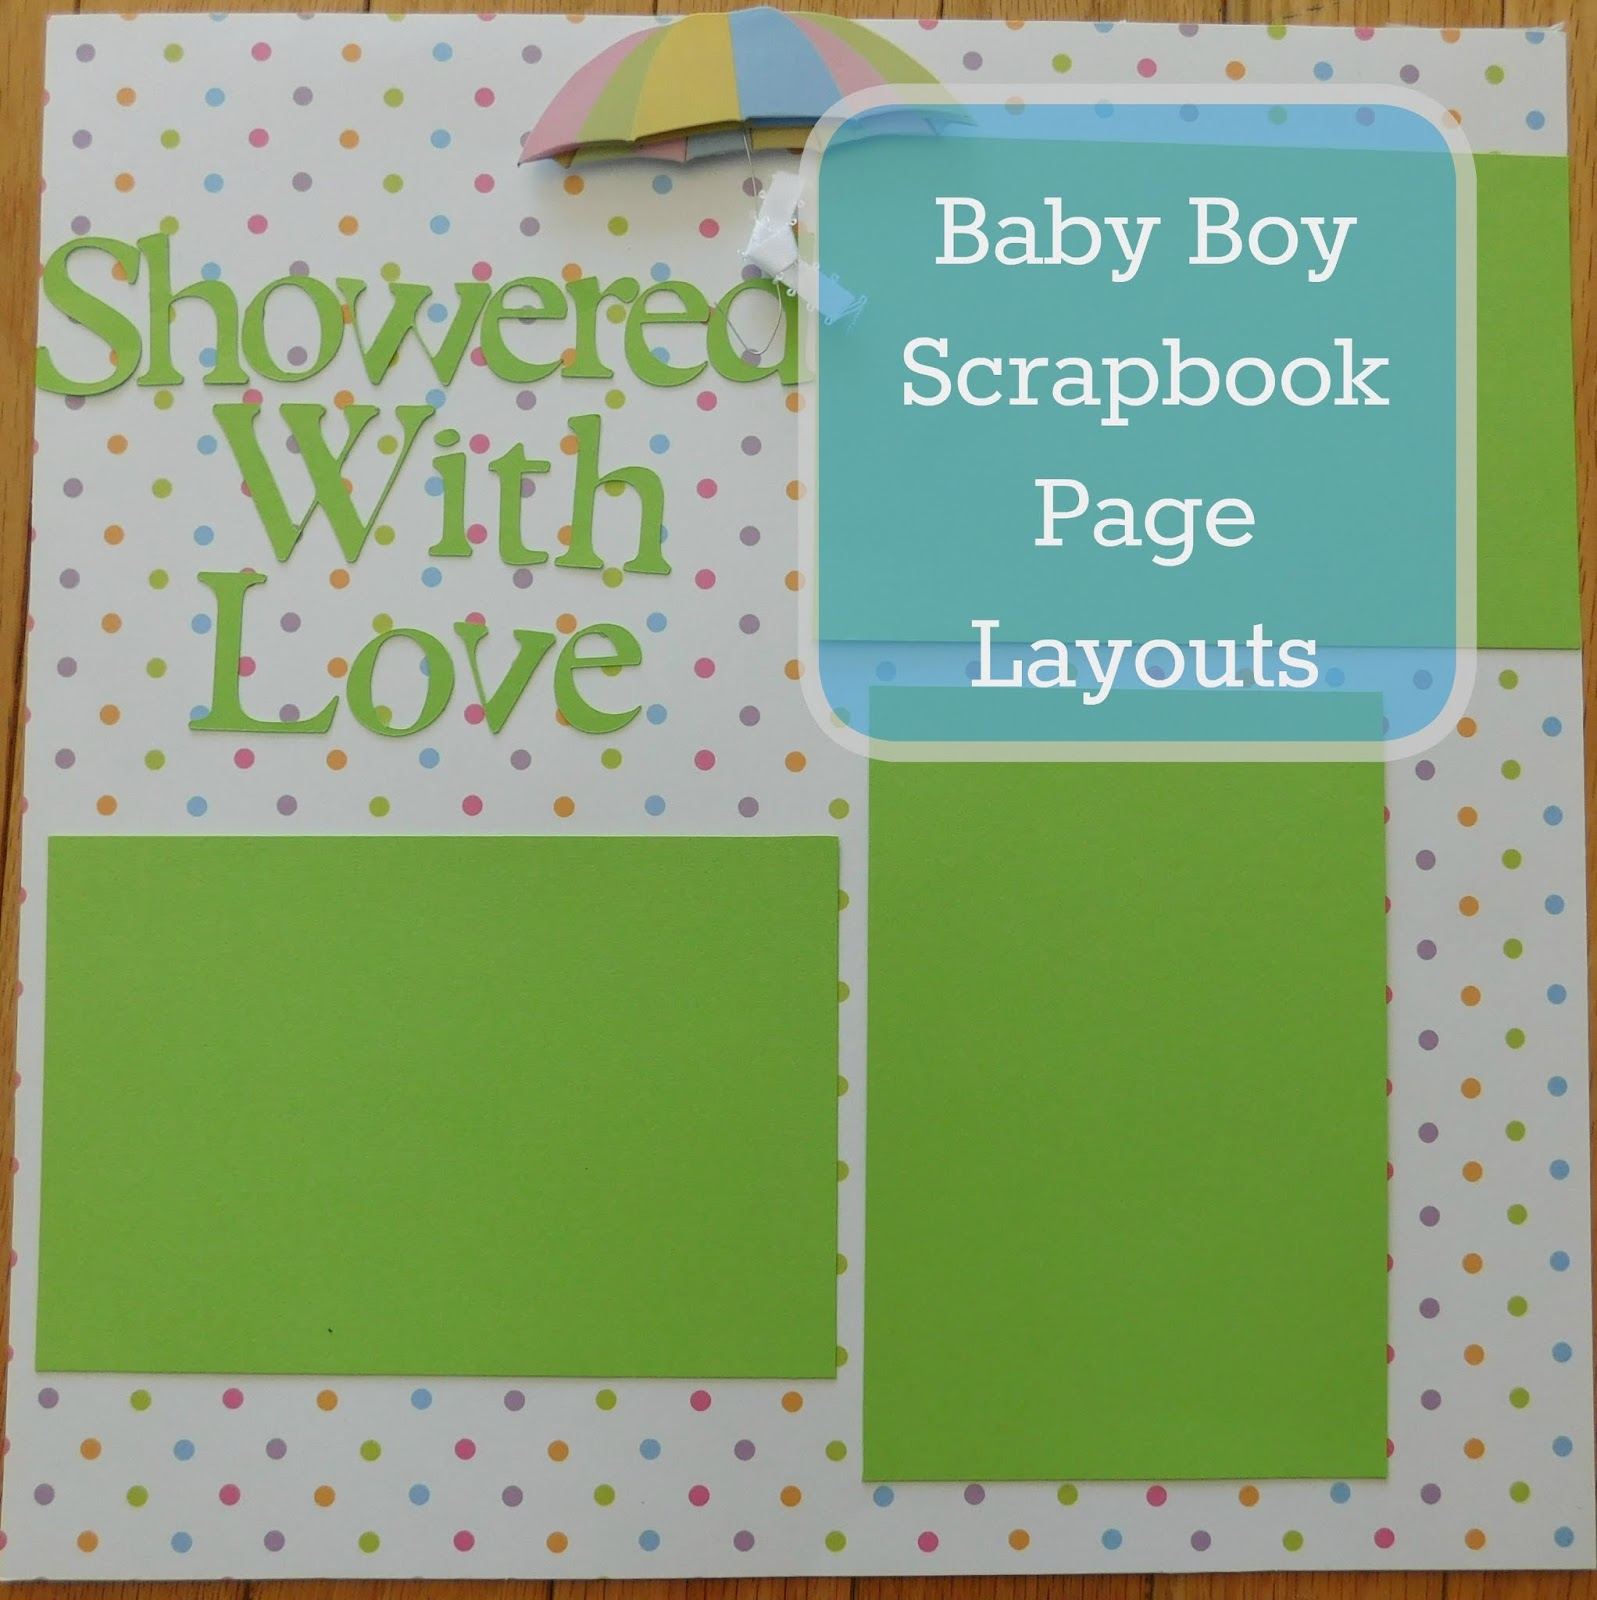 Our Unschooling Journey Through Life Baby Boy Scrapbooking Page Layouts